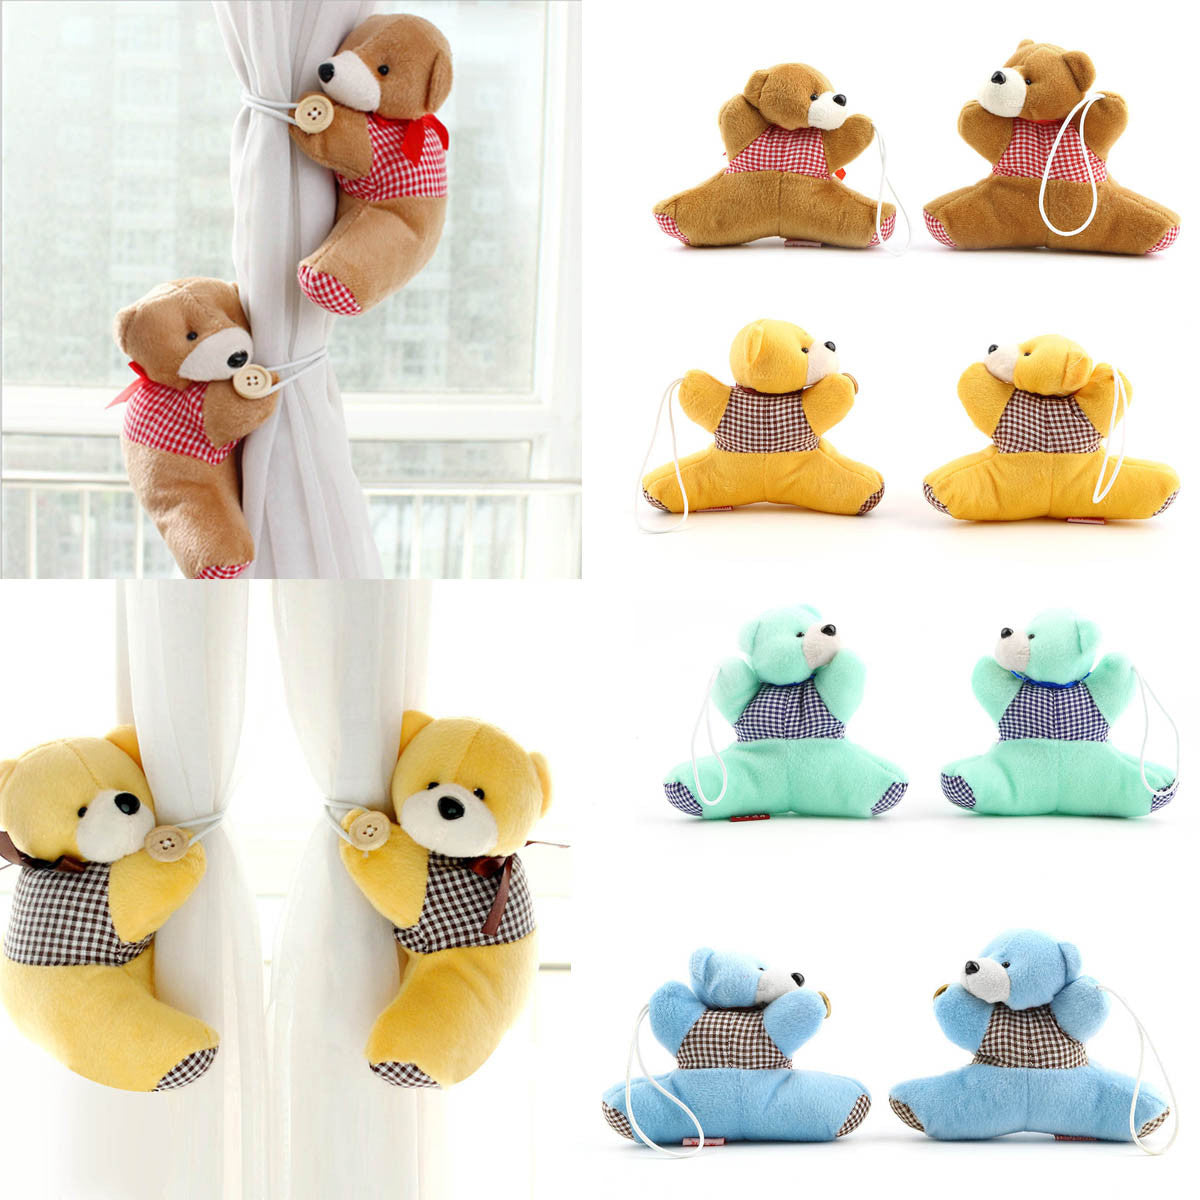 1 Pair Baby Kid Cartoon Bear Holder Nursery Bedroom Curtain Tieback Buckle Hook 4 Colors Free Shipping&Wholesales